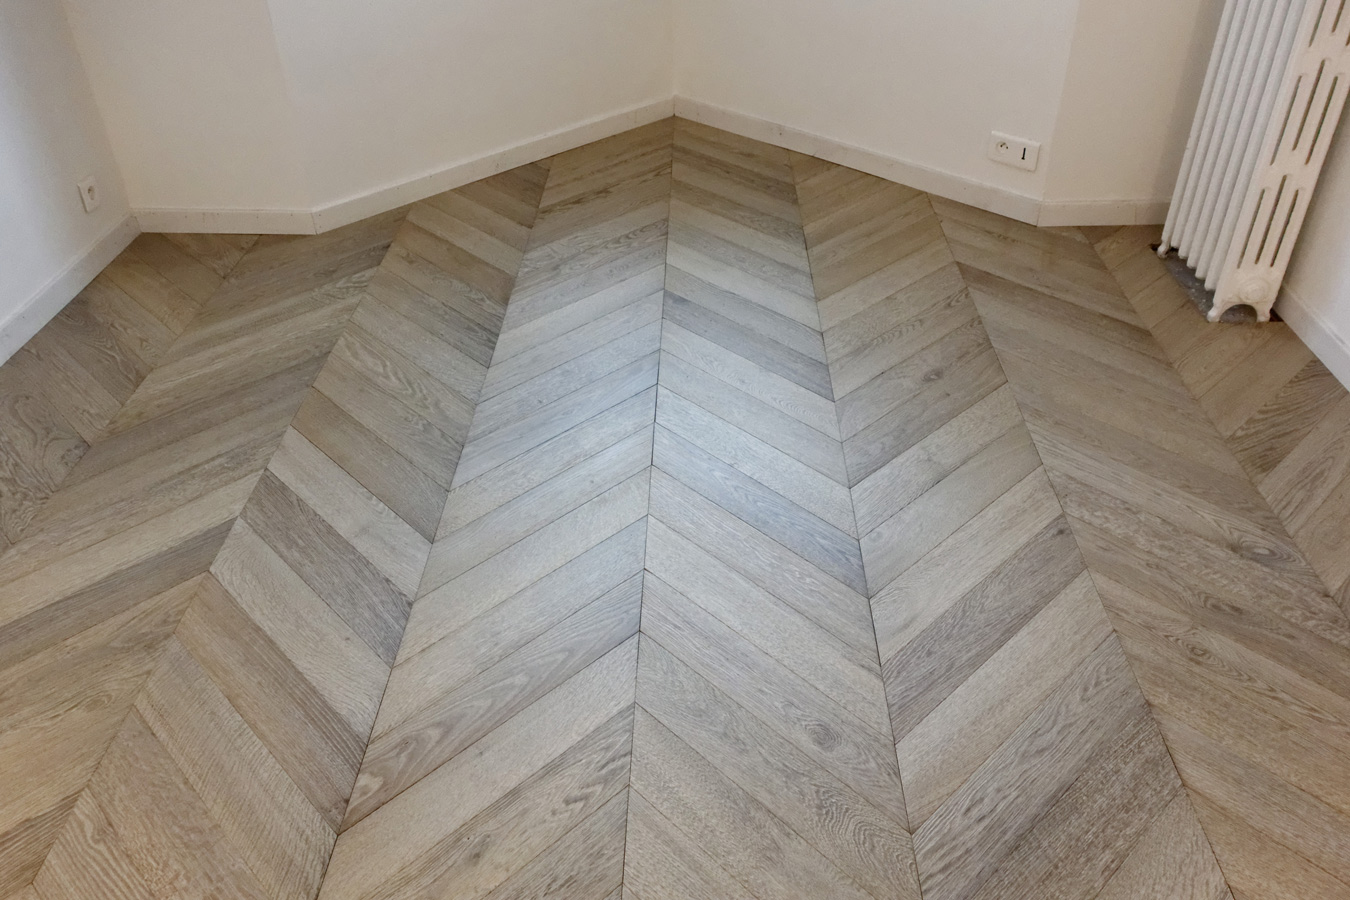 Exemple n°4 parquet Point de Hongrie